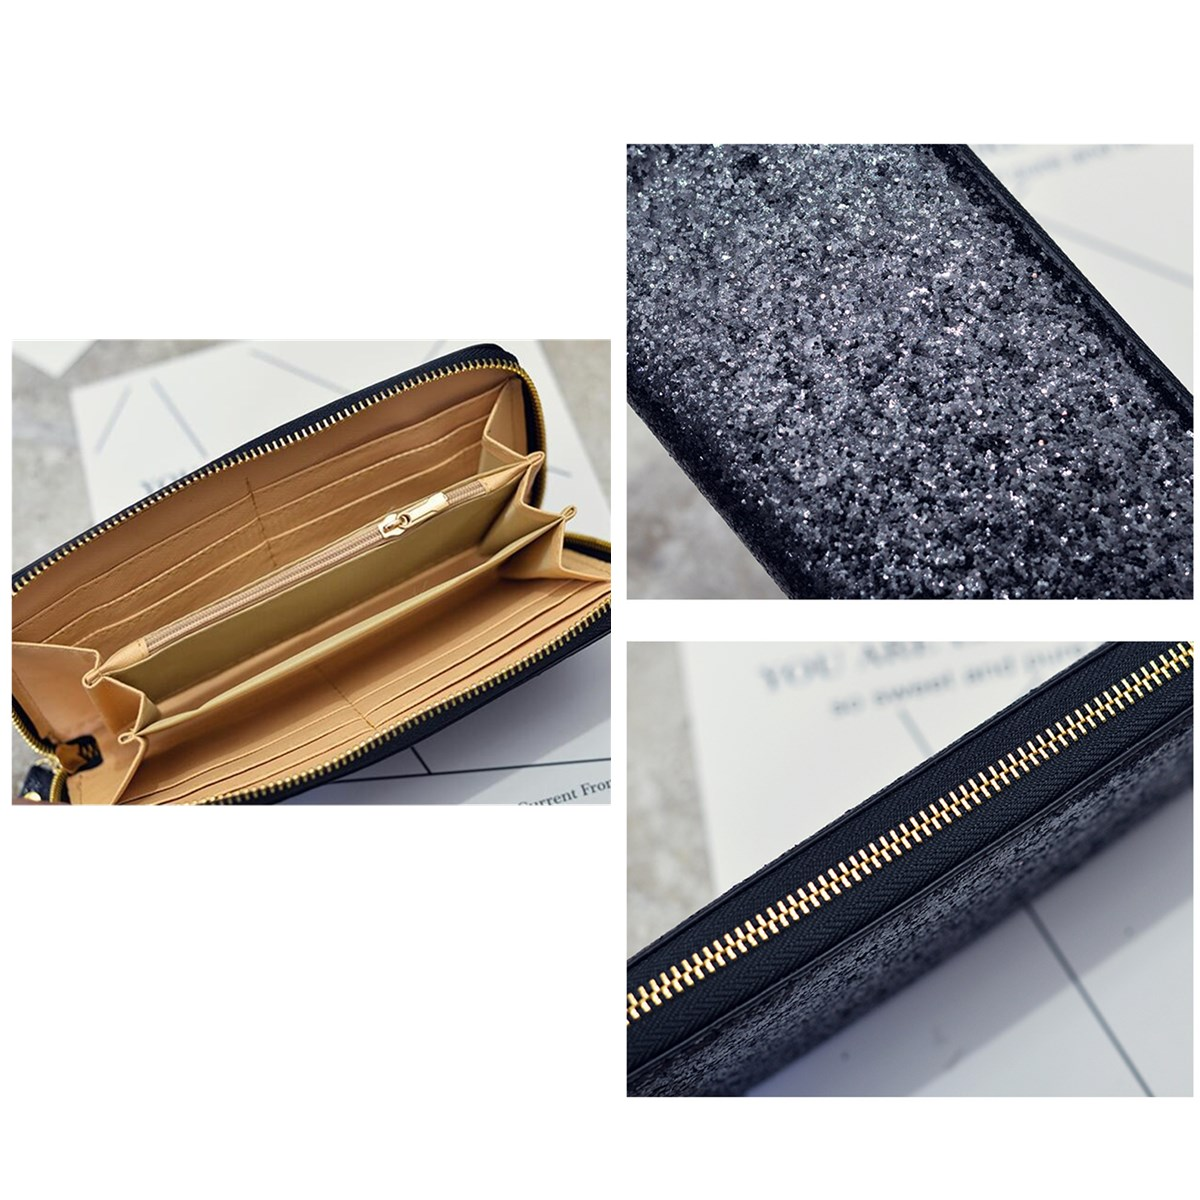 Universal 5.5 Inch Sequins Functional Phone Wallet Case Cover For iPhone Xiaomi Samsung Huawei